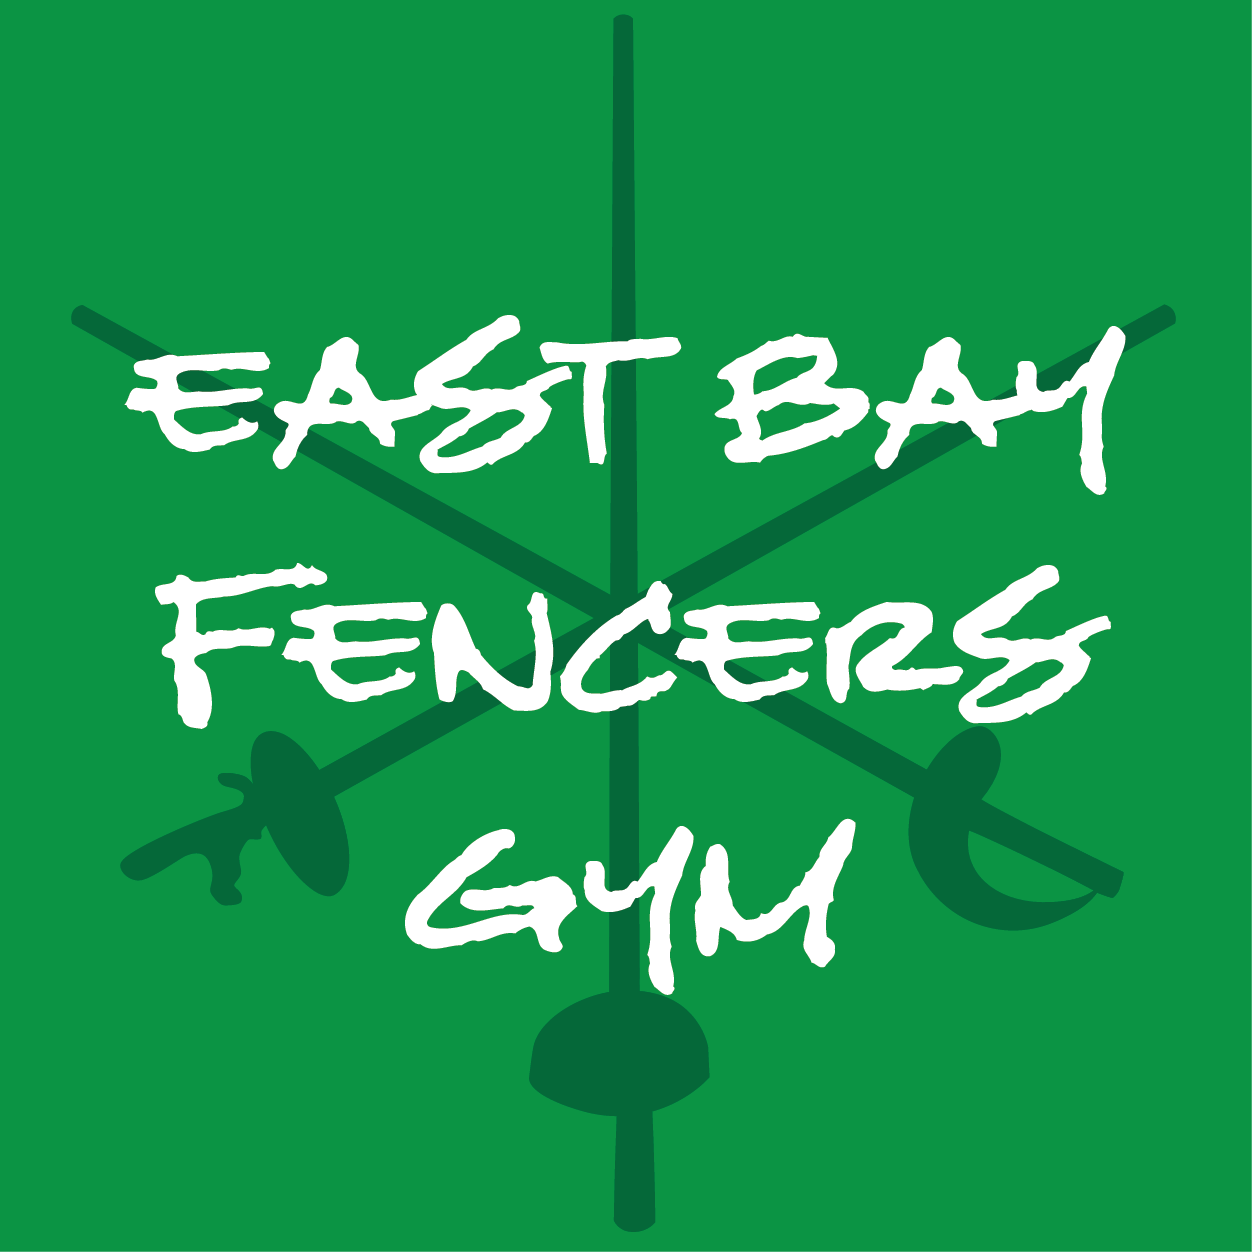 East Bay Fencers Gym